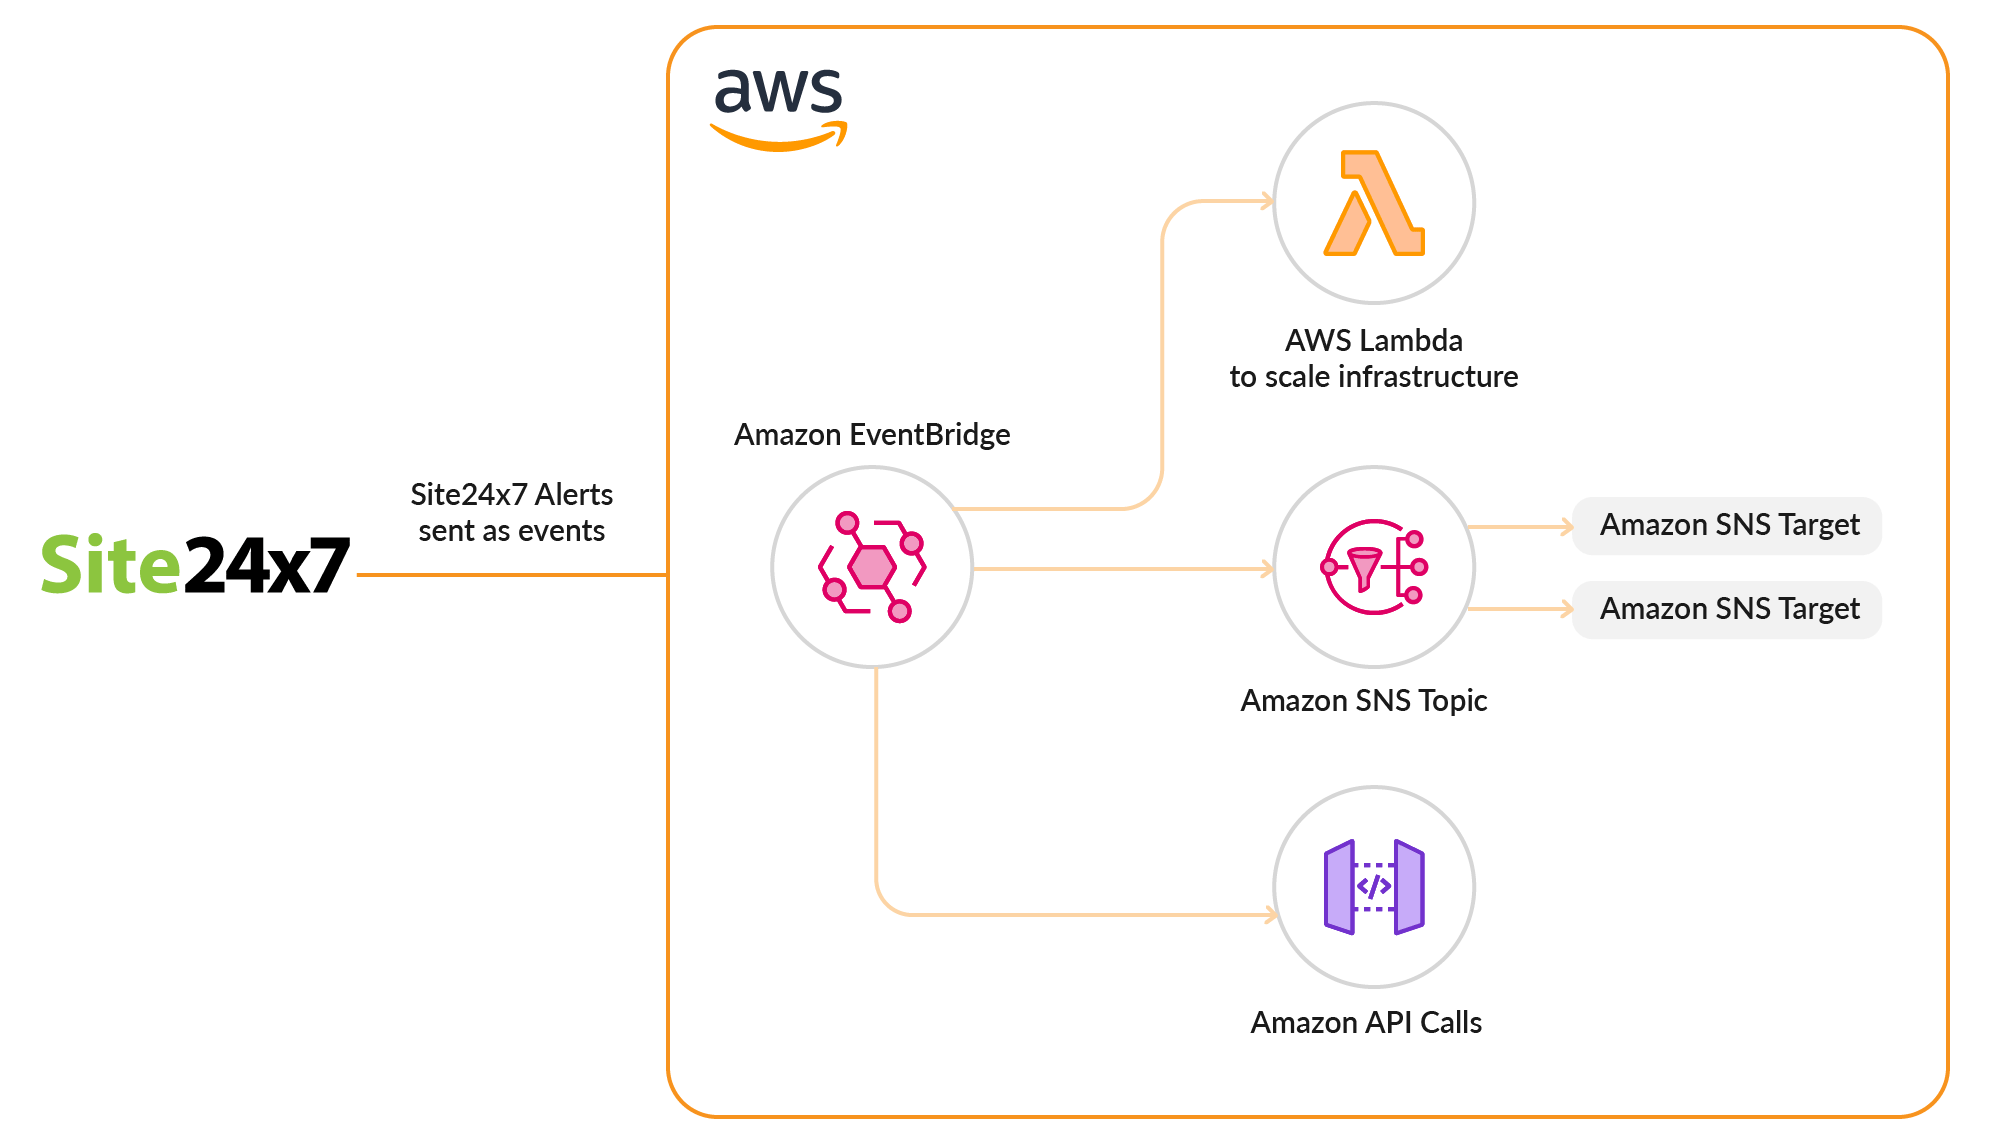 Integrate with Amazon EventBride and automate serverless workflows.